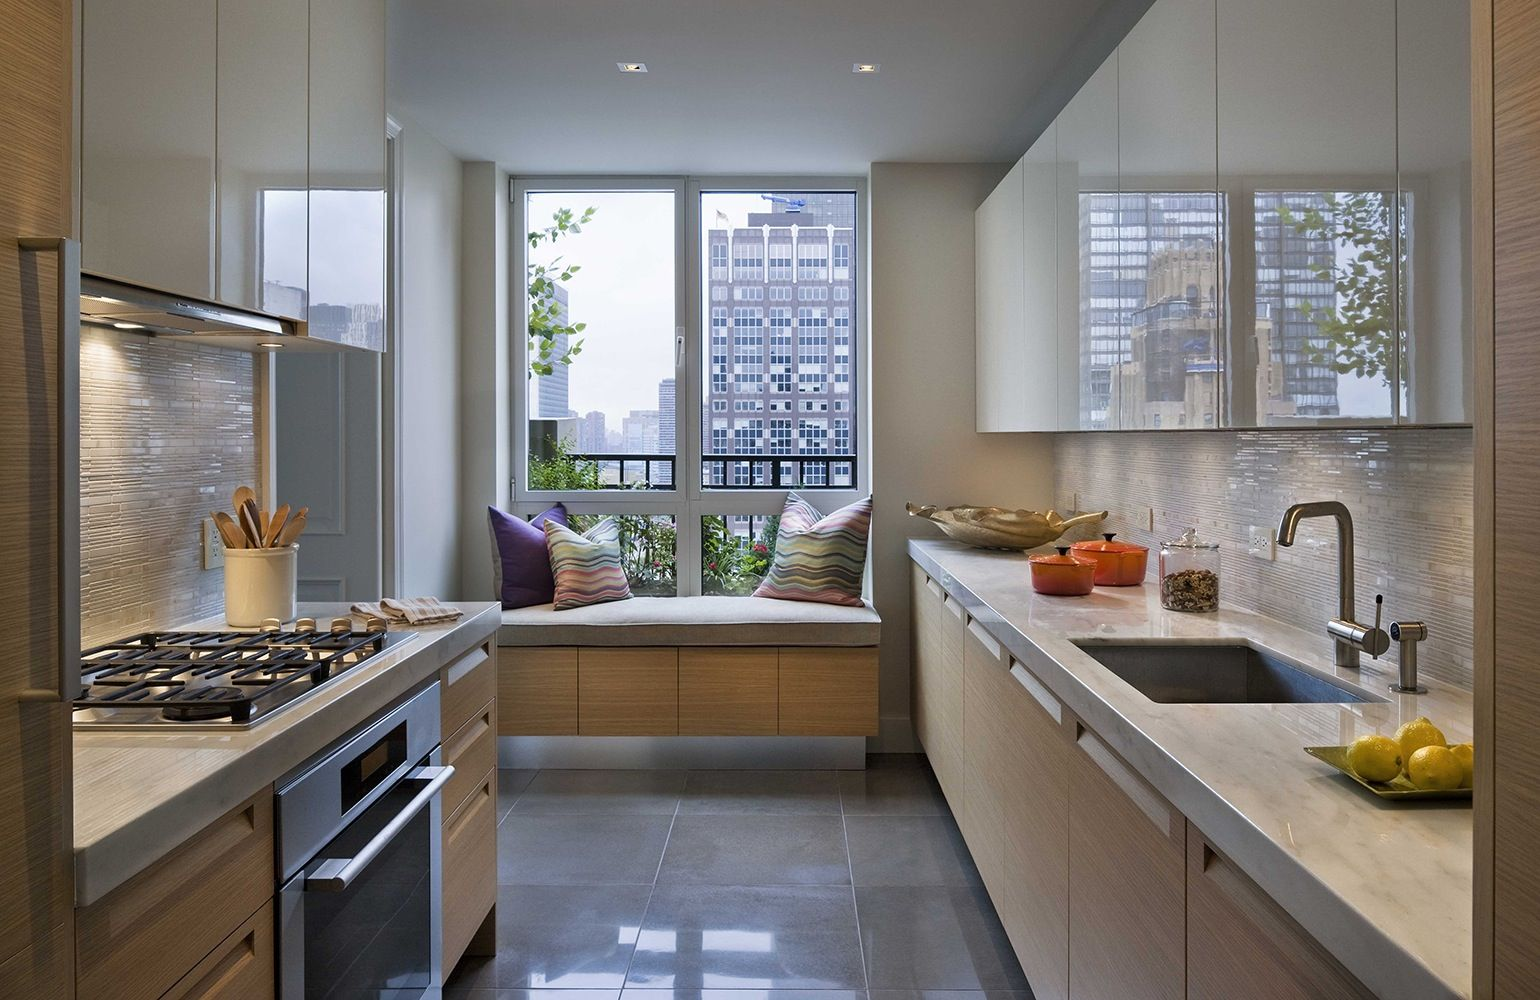 20 Sophisticated Galley-Style Kitchens | Ideas para cocinas, Ideas ...